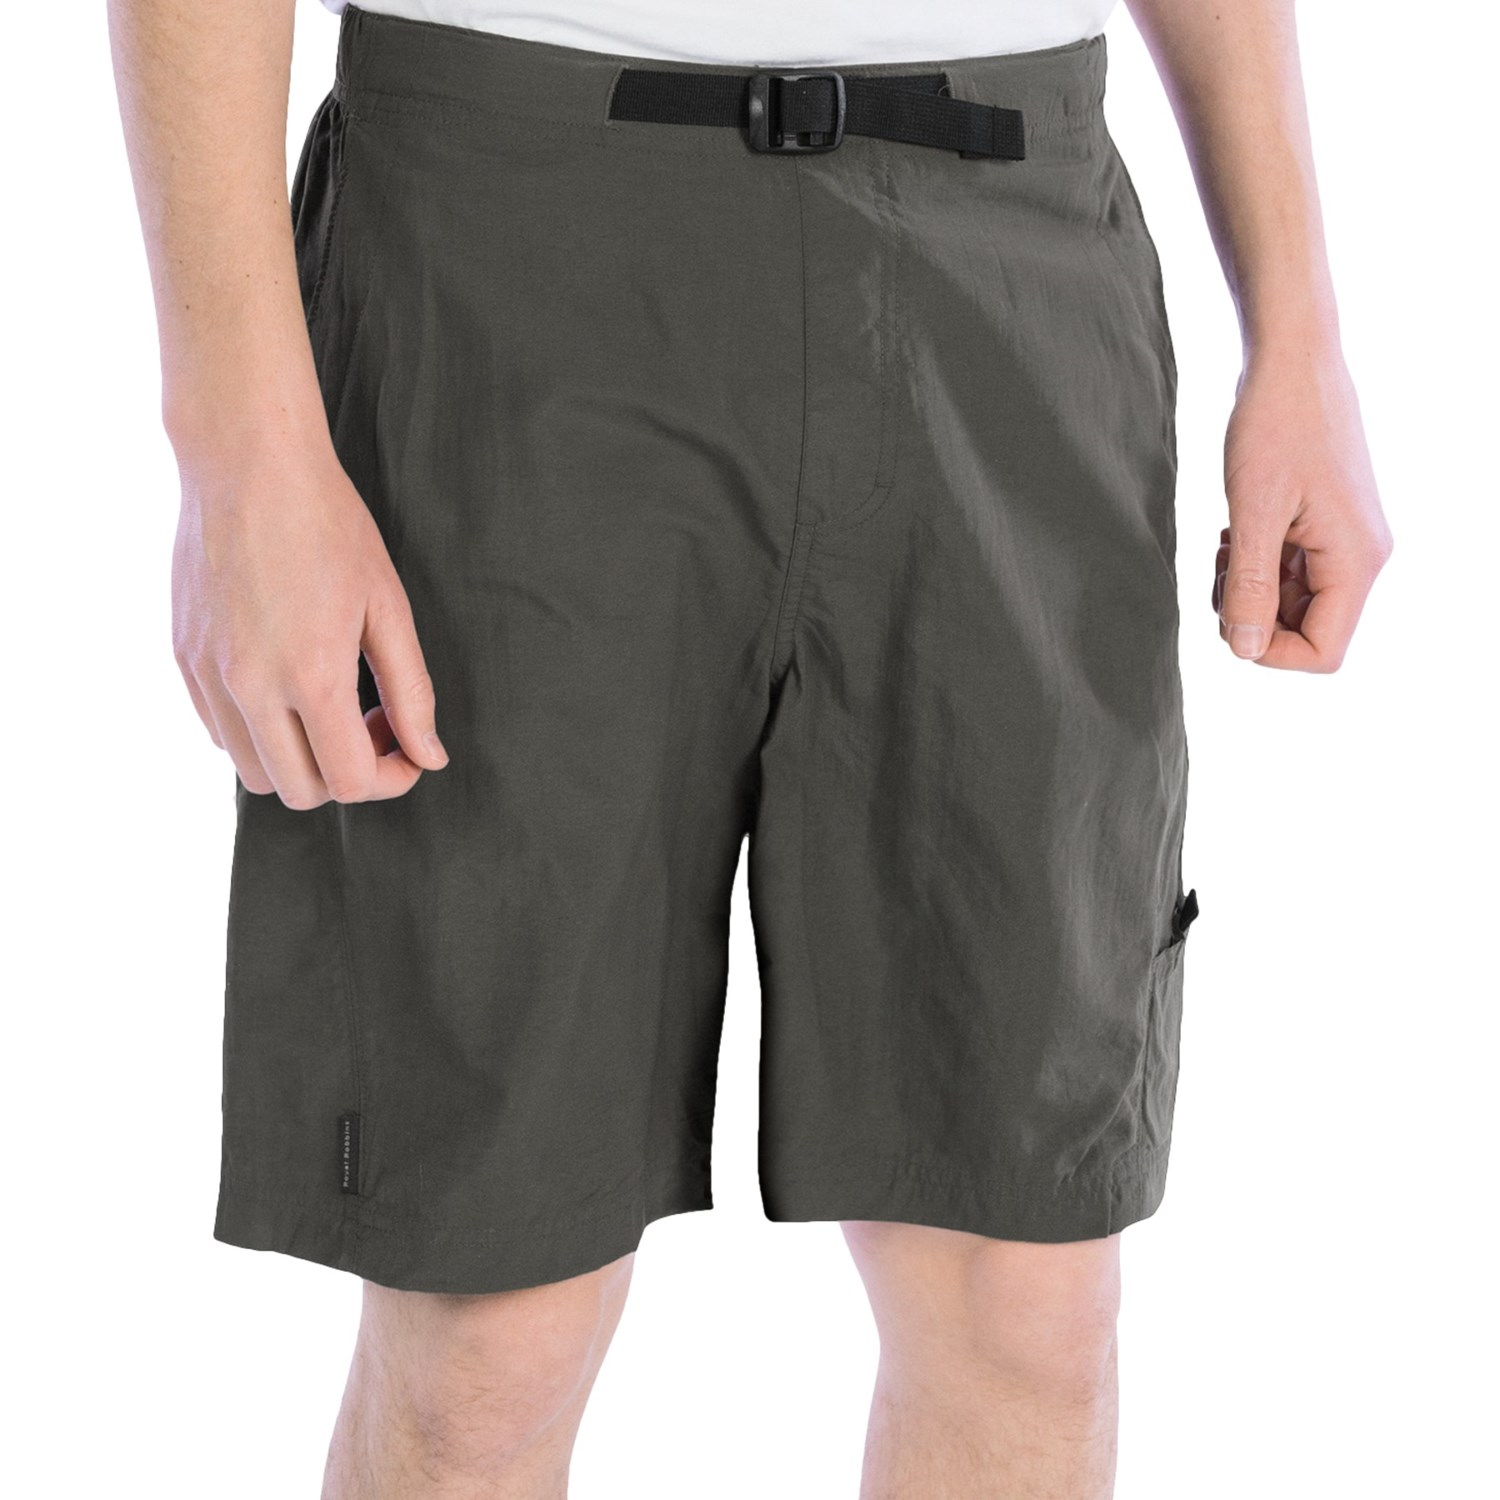 Target / Men / Men's Clothing / Swimsuits () mens camo swim trunks; board multicolor shorts; elastic board shorts; mens green board shorts; mens plaid golf pants *See offer details. Restrictions apply. Pricing, promotions and availability may vary by location and at gusajigadexe.cf